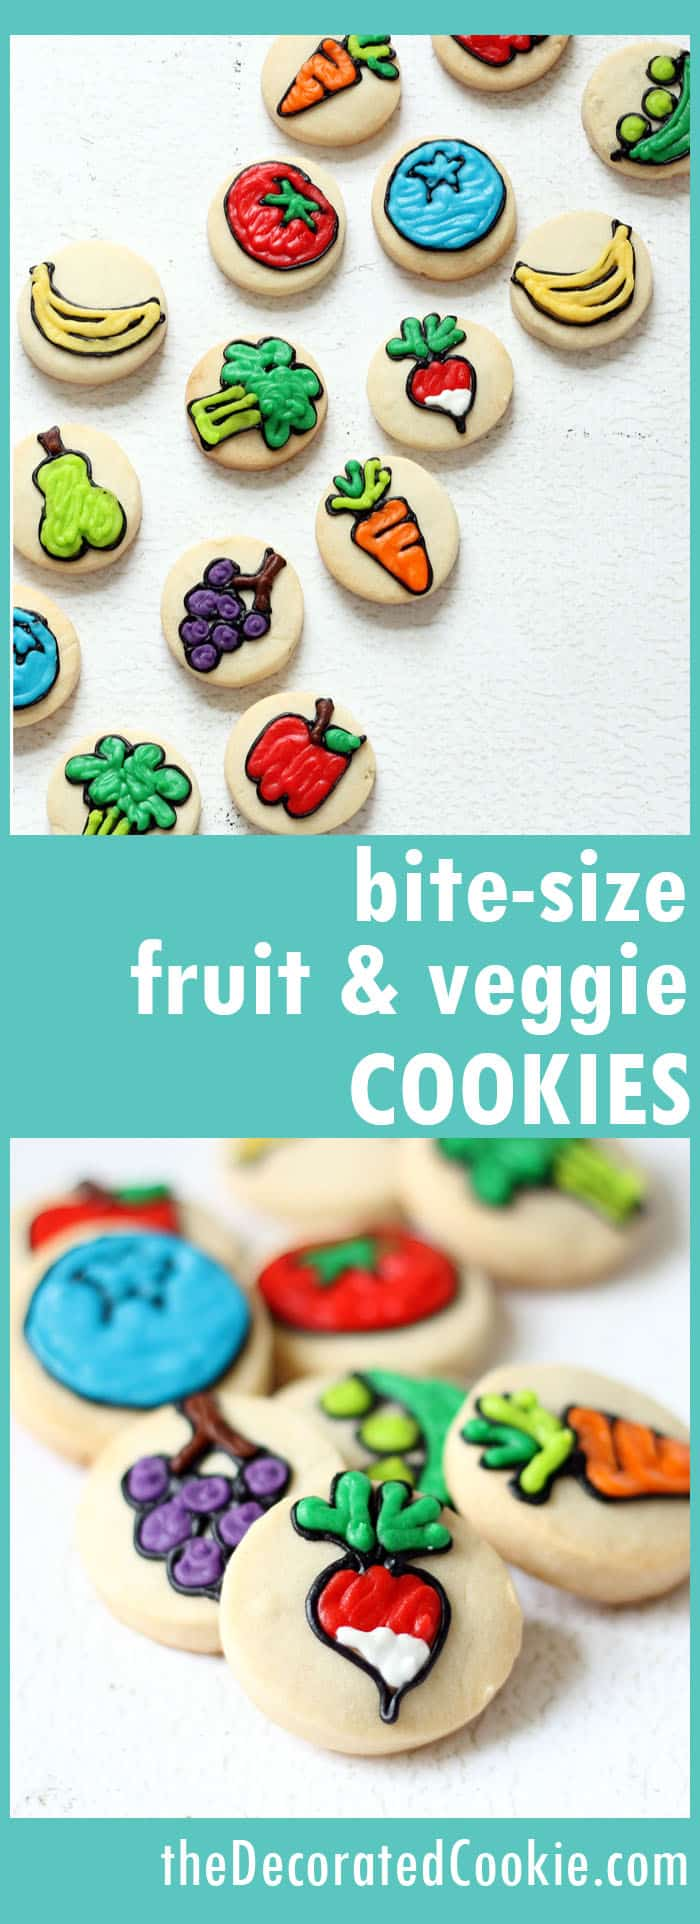 These bite-size fruit and veggie cookies are a cute and fun treat for Spring.